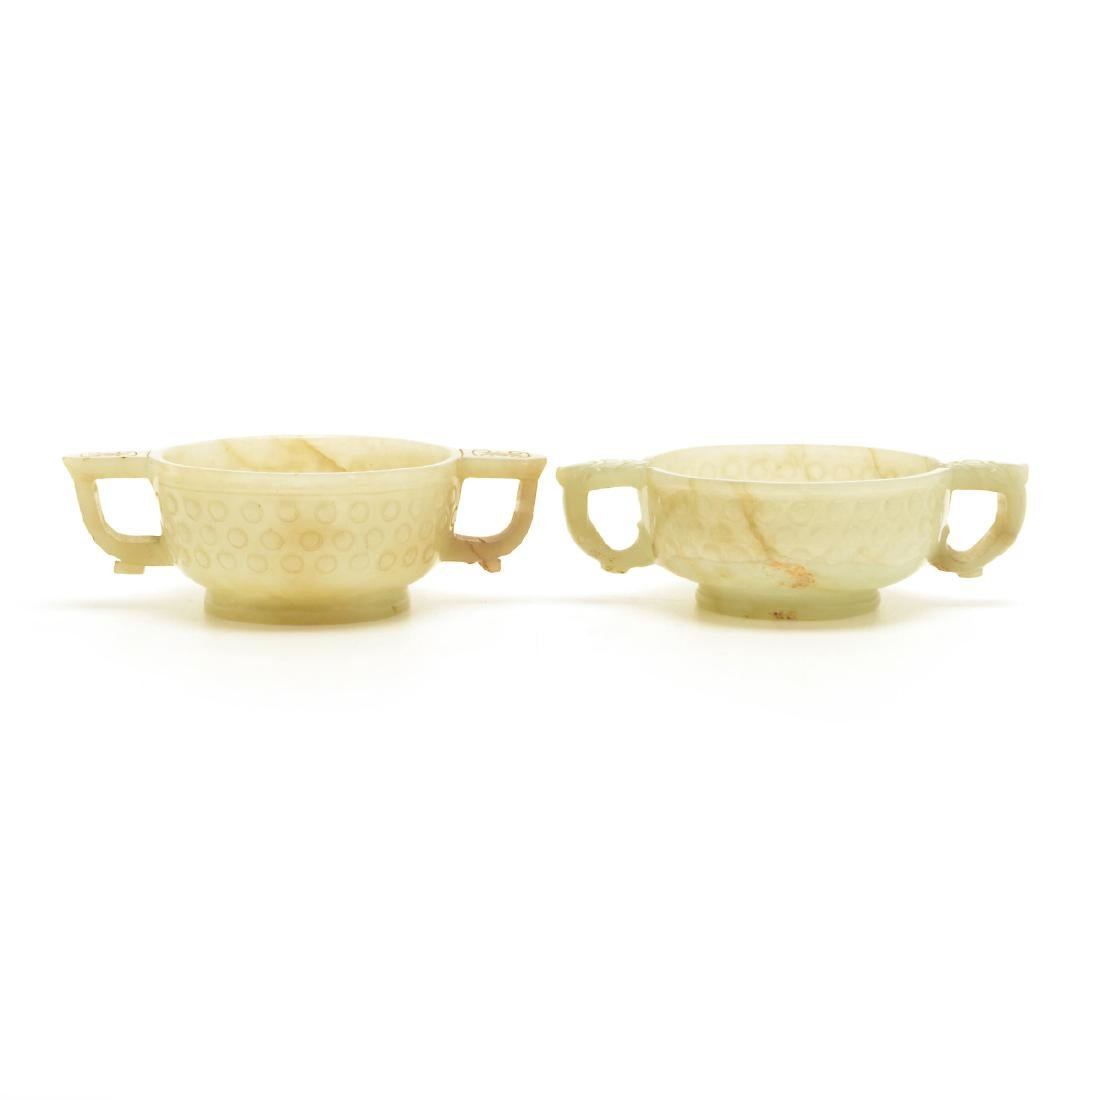 Two Jade Libation Cups, 18th Century - 2